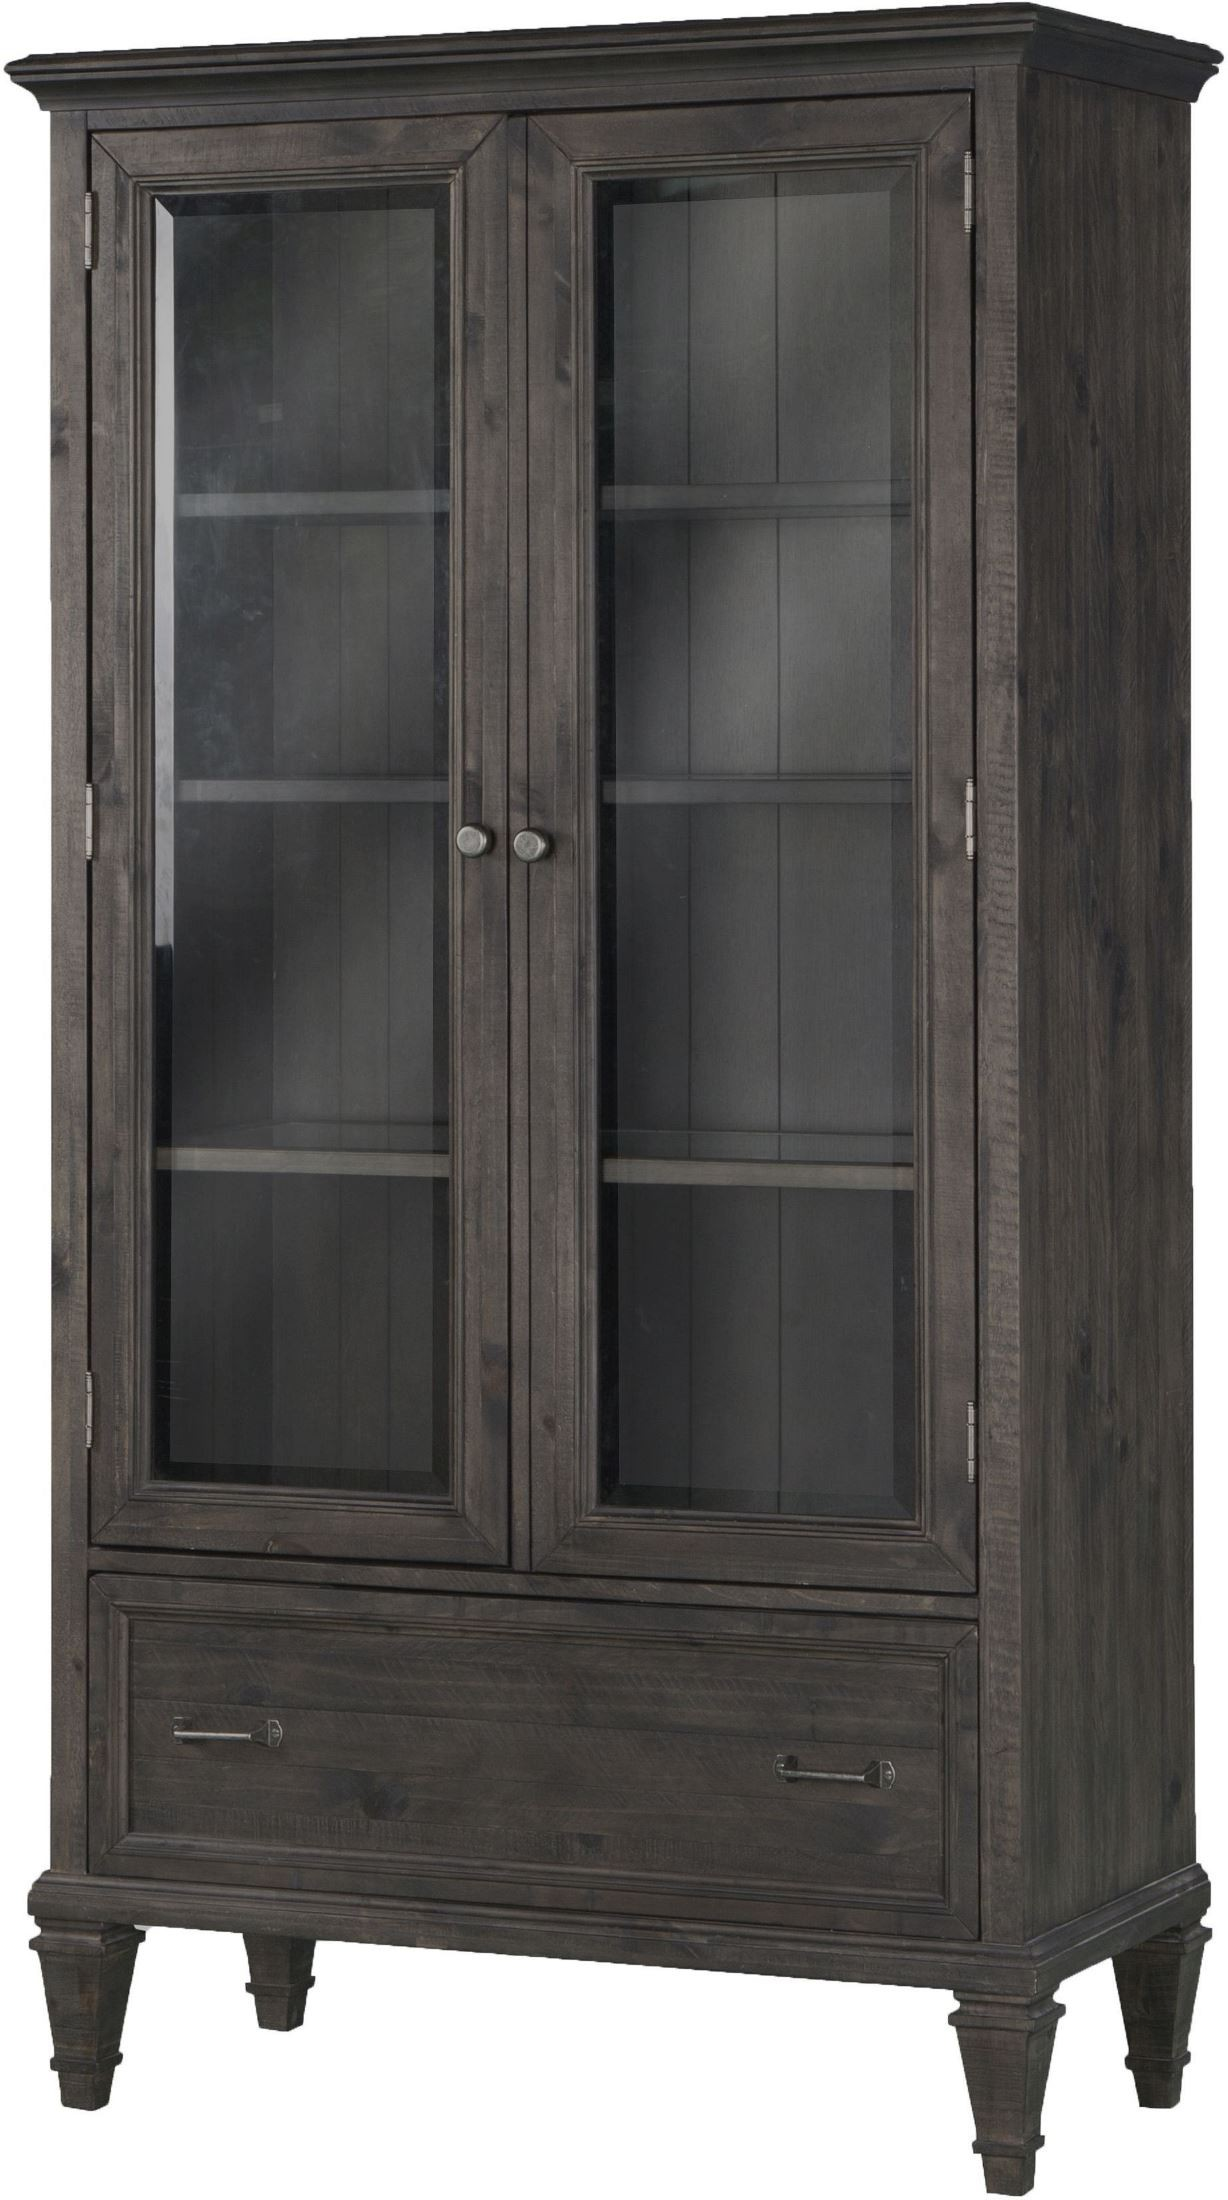 Sutton Place Weathered Charcoal Door Bookcase From